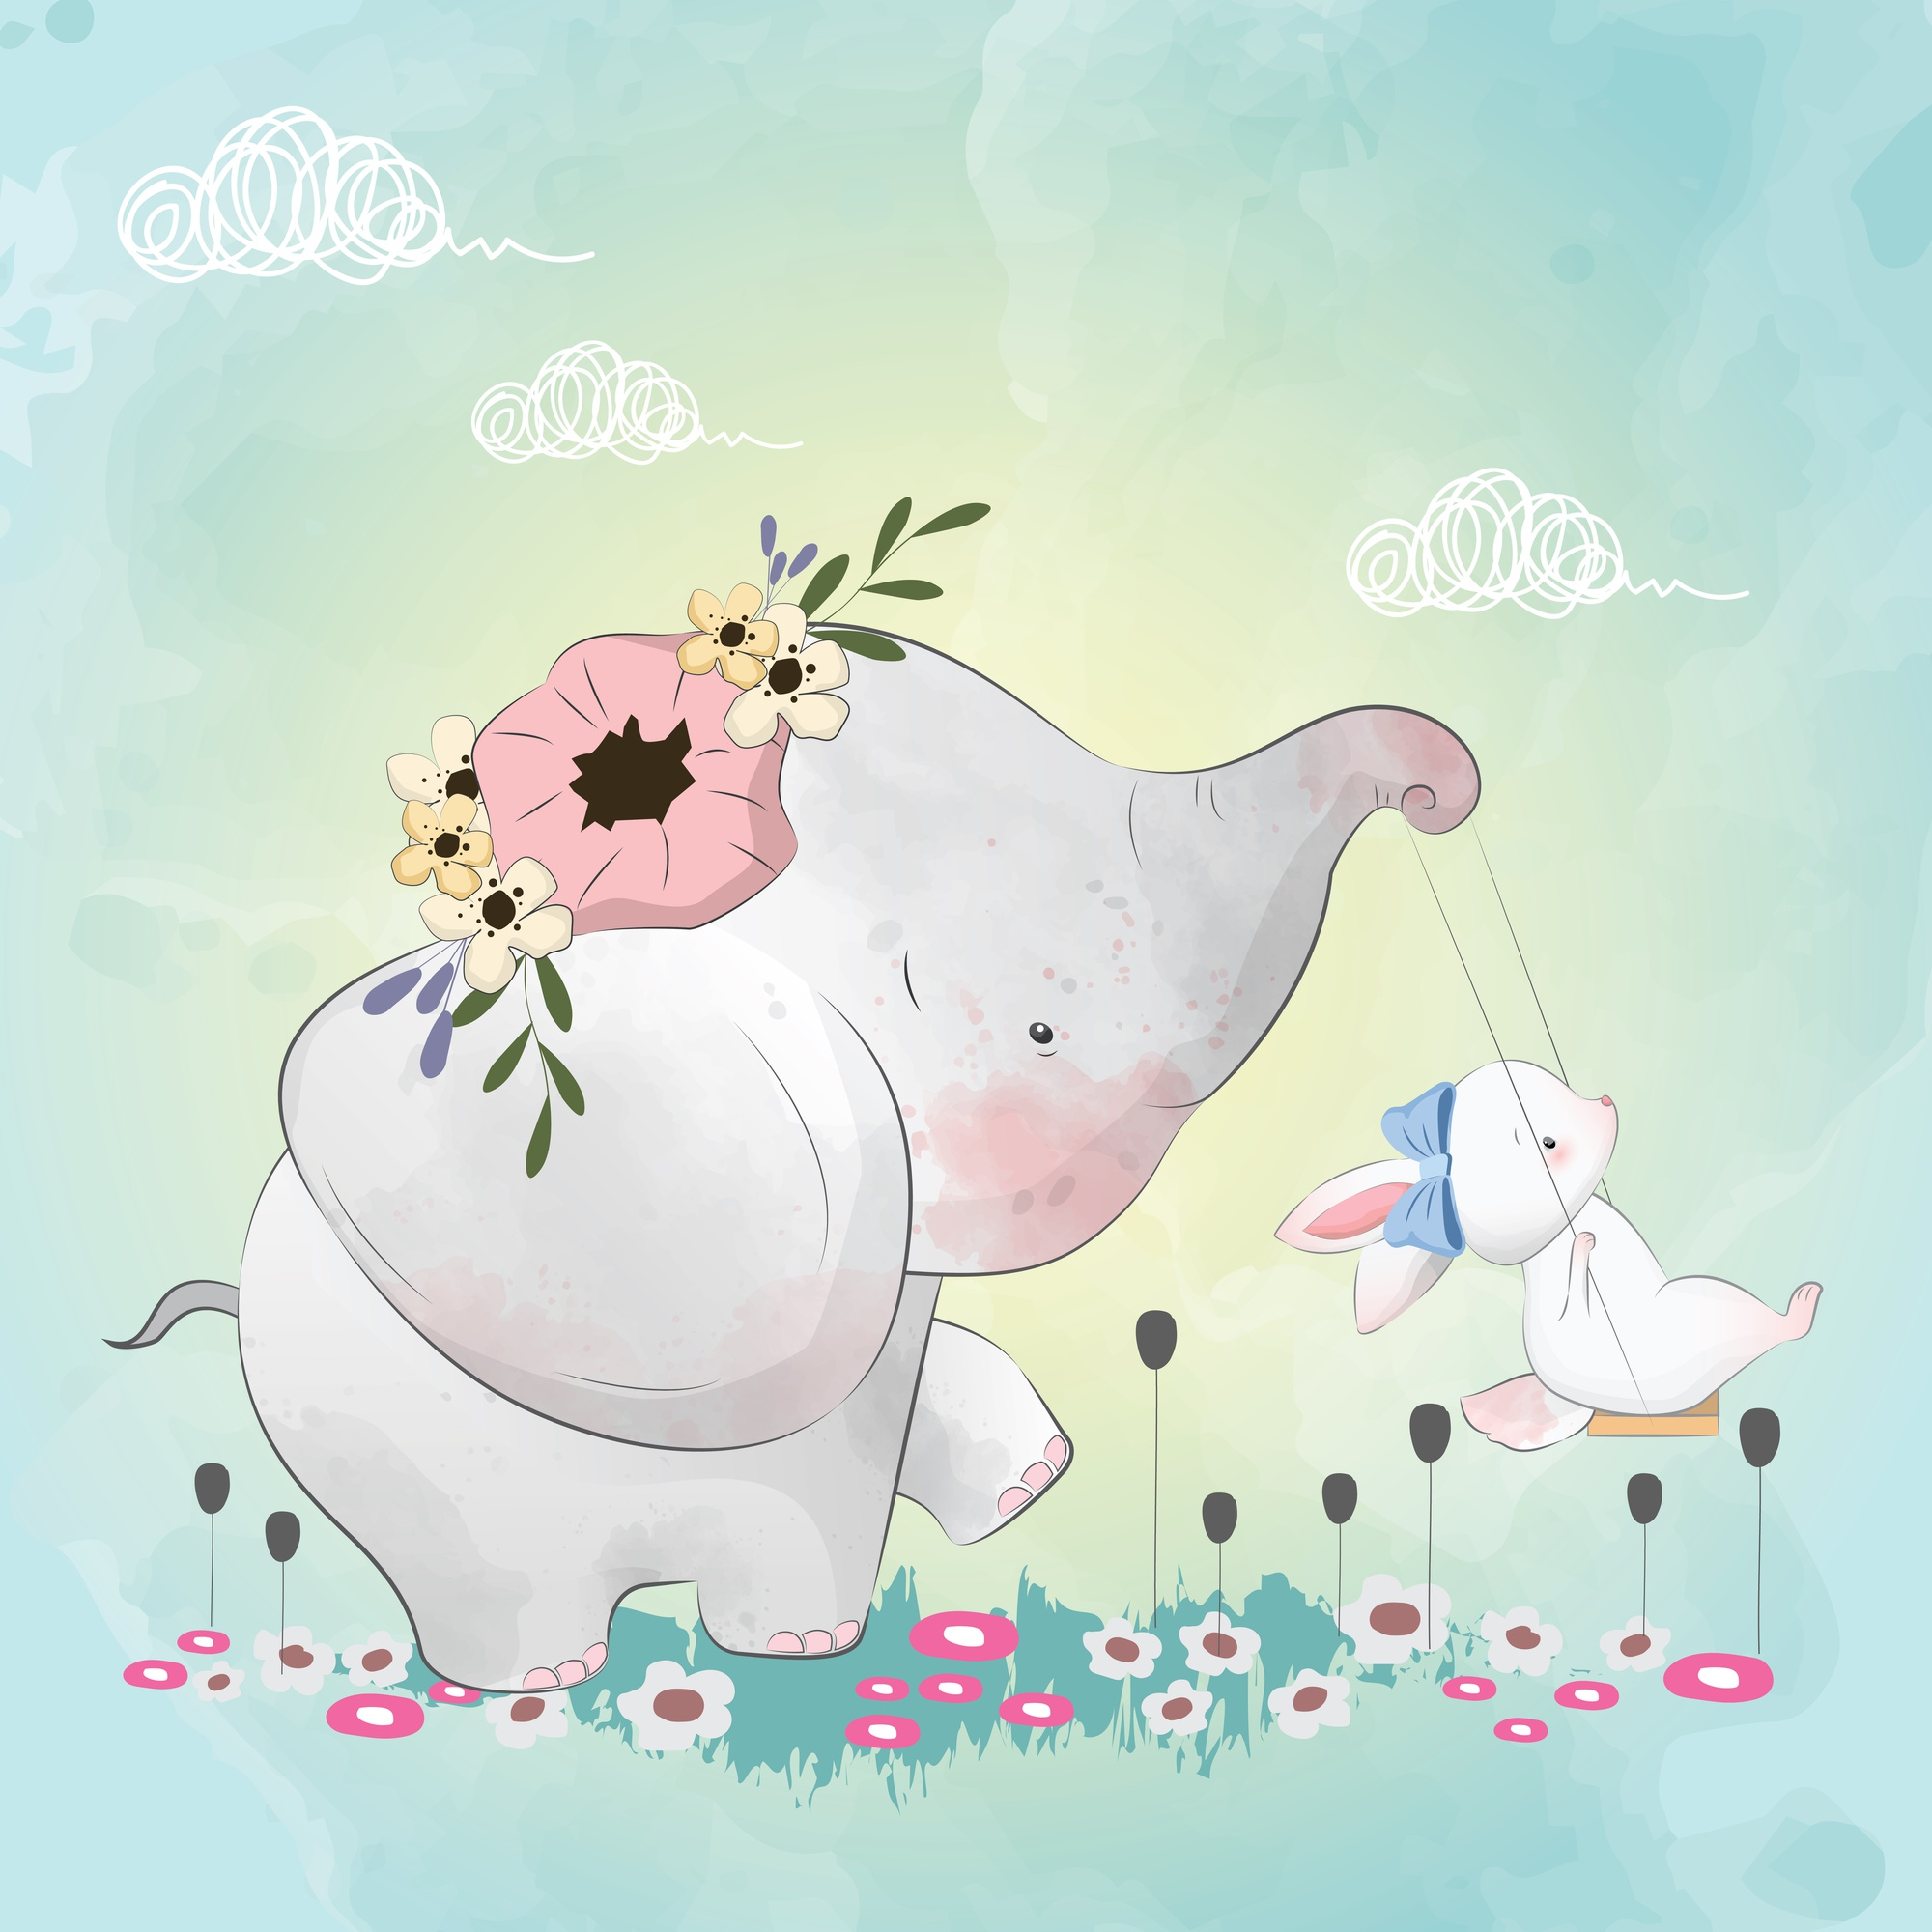 Little Elephant with His Friends Bunny on the Swing